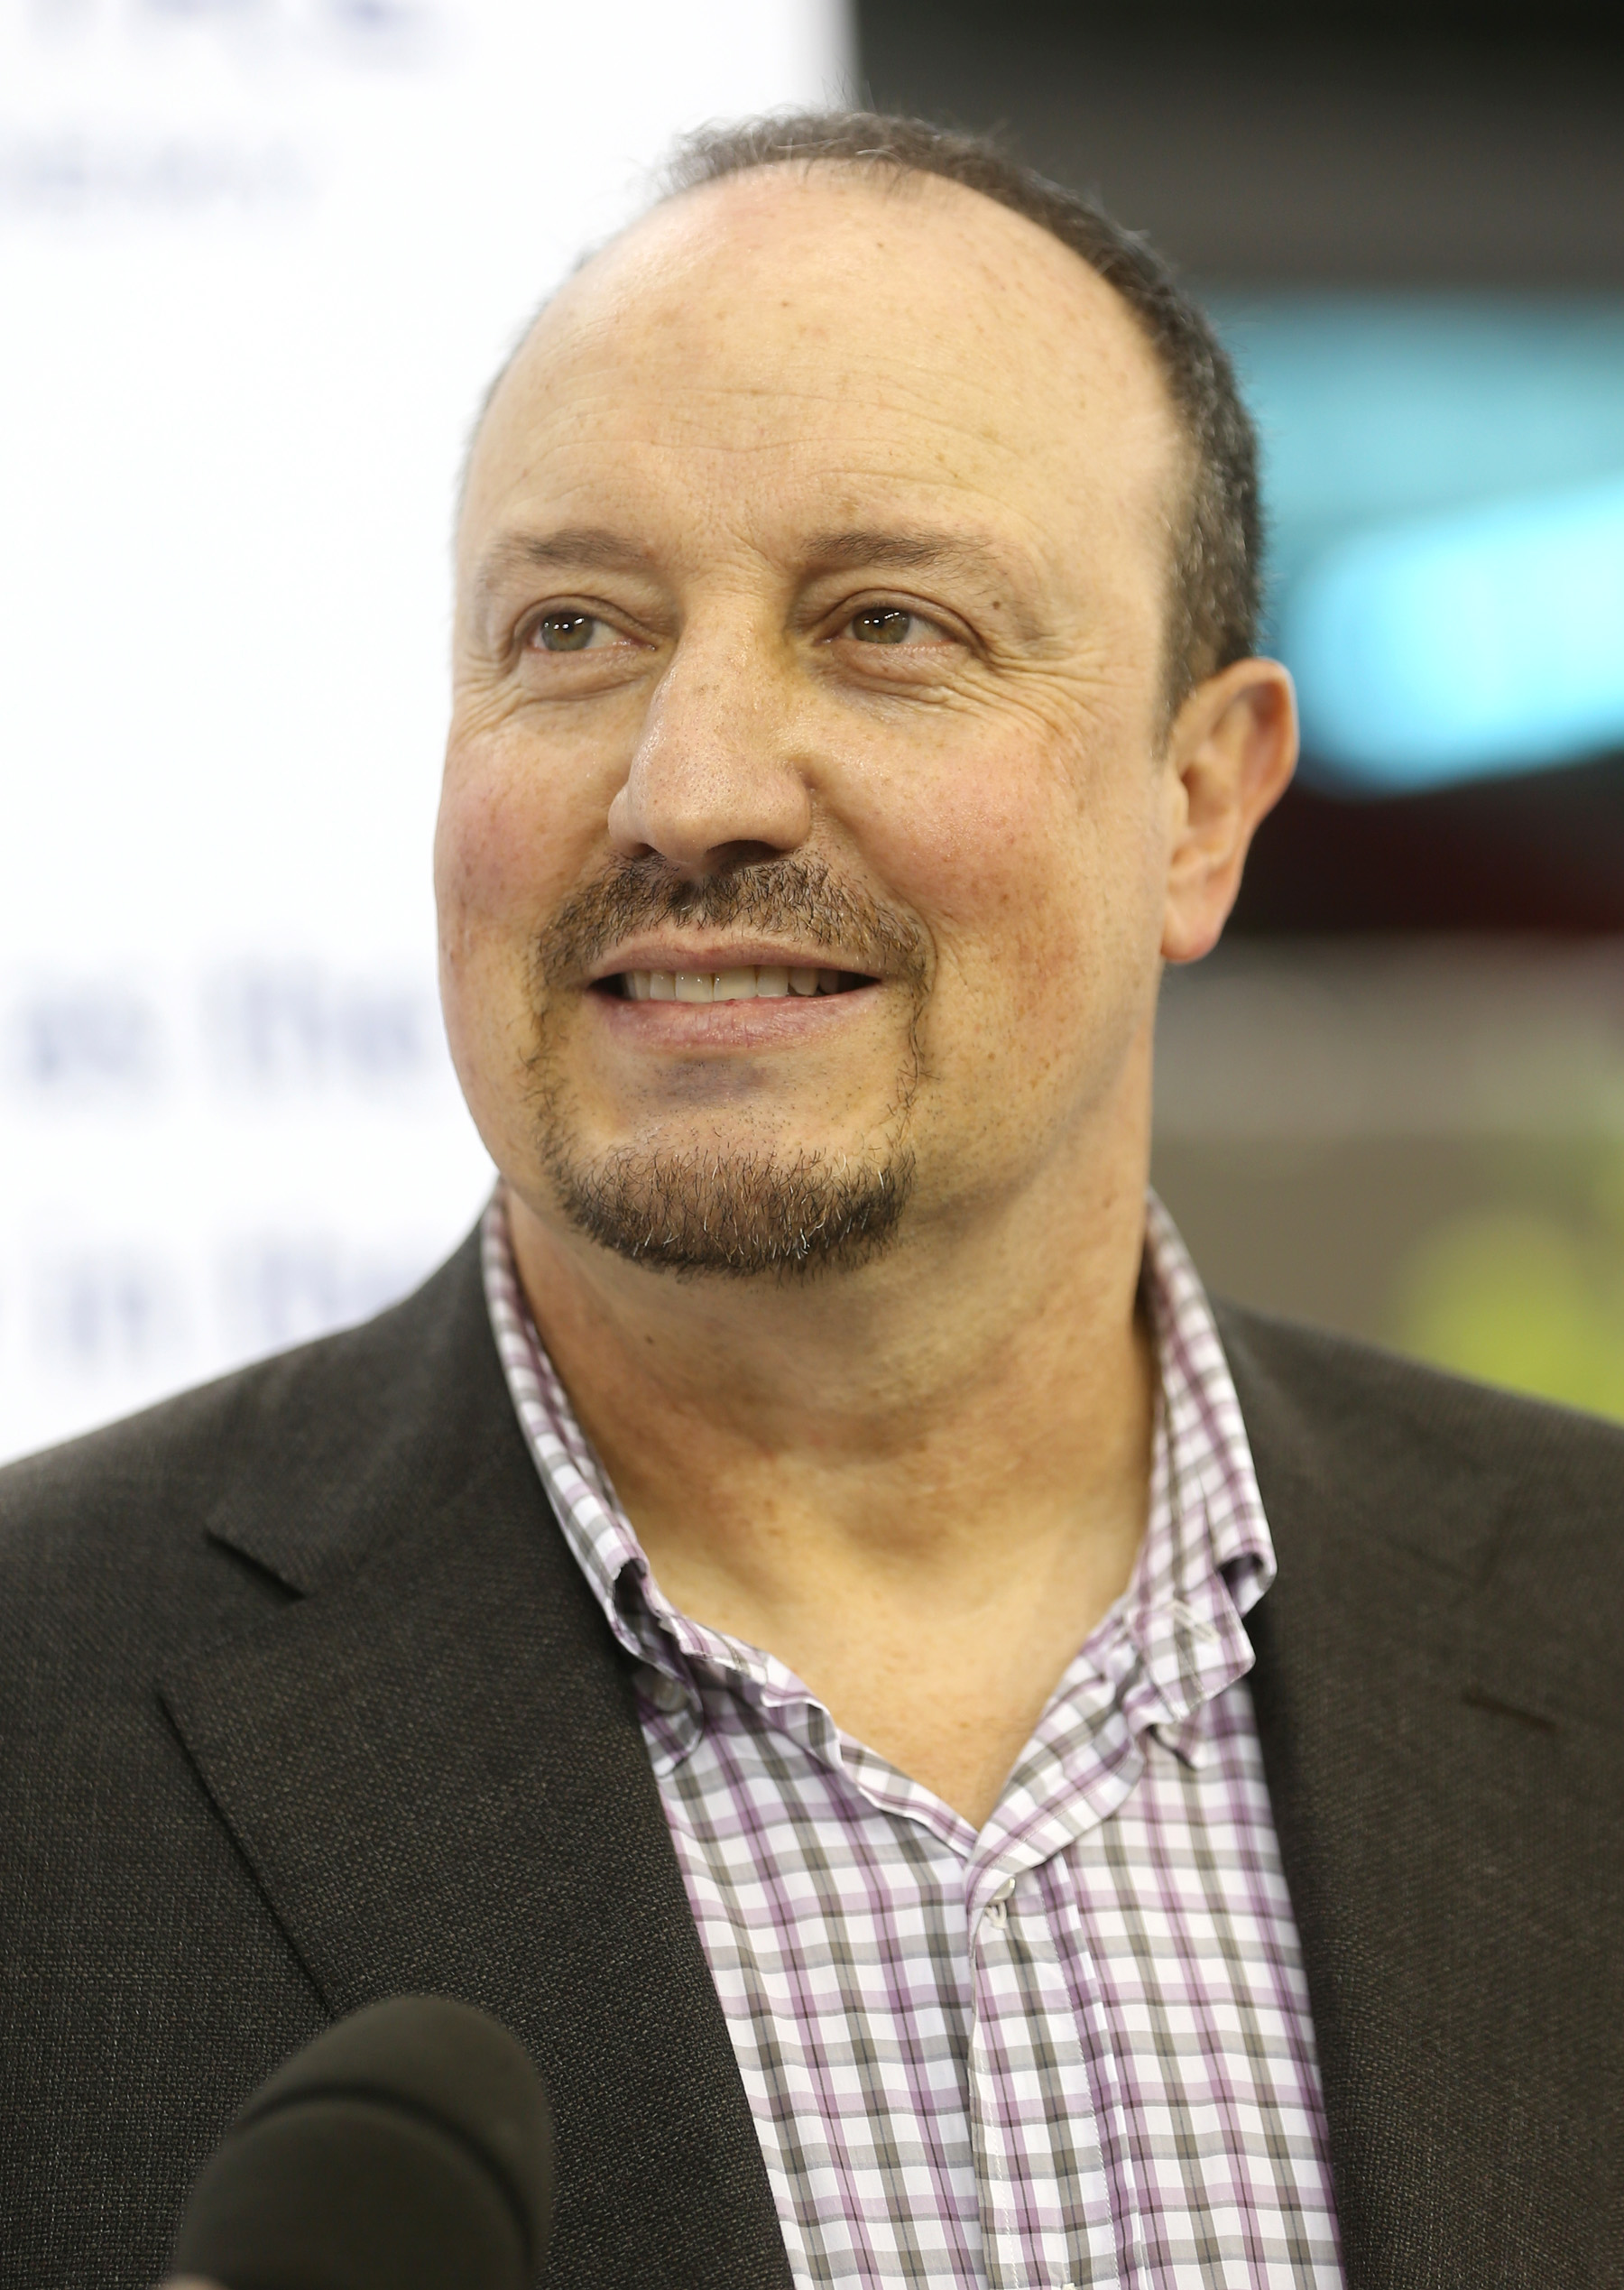 The 58-year old son of father Francisco Benítez and mother Rosario Maudes Rafael Benitez in 2018 photo. Rafael Benitez earned a  million dollar salary - leaving the net worth at 32 million in 2018